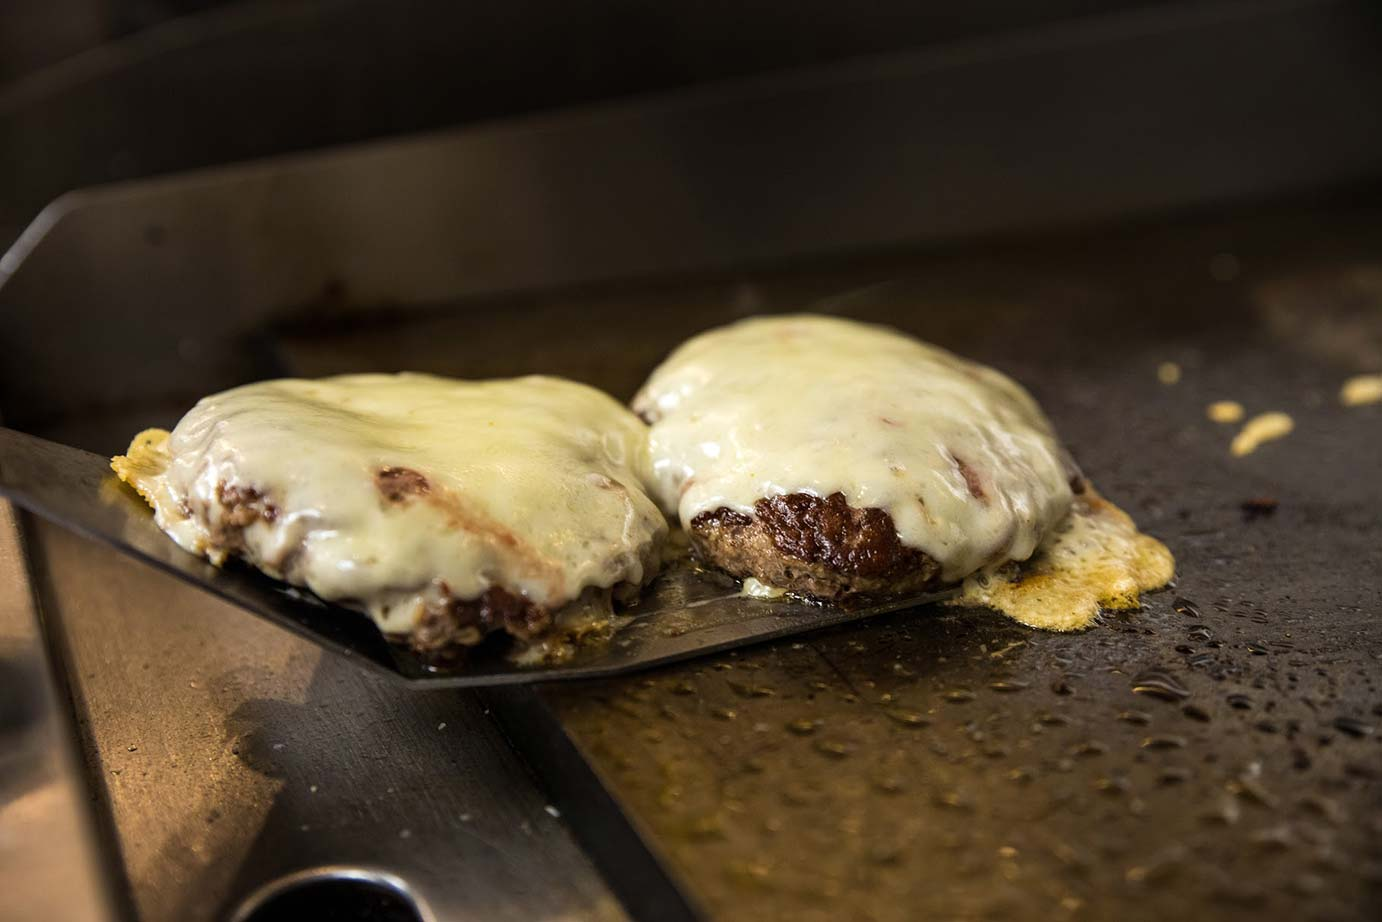 Burgers with the cheese